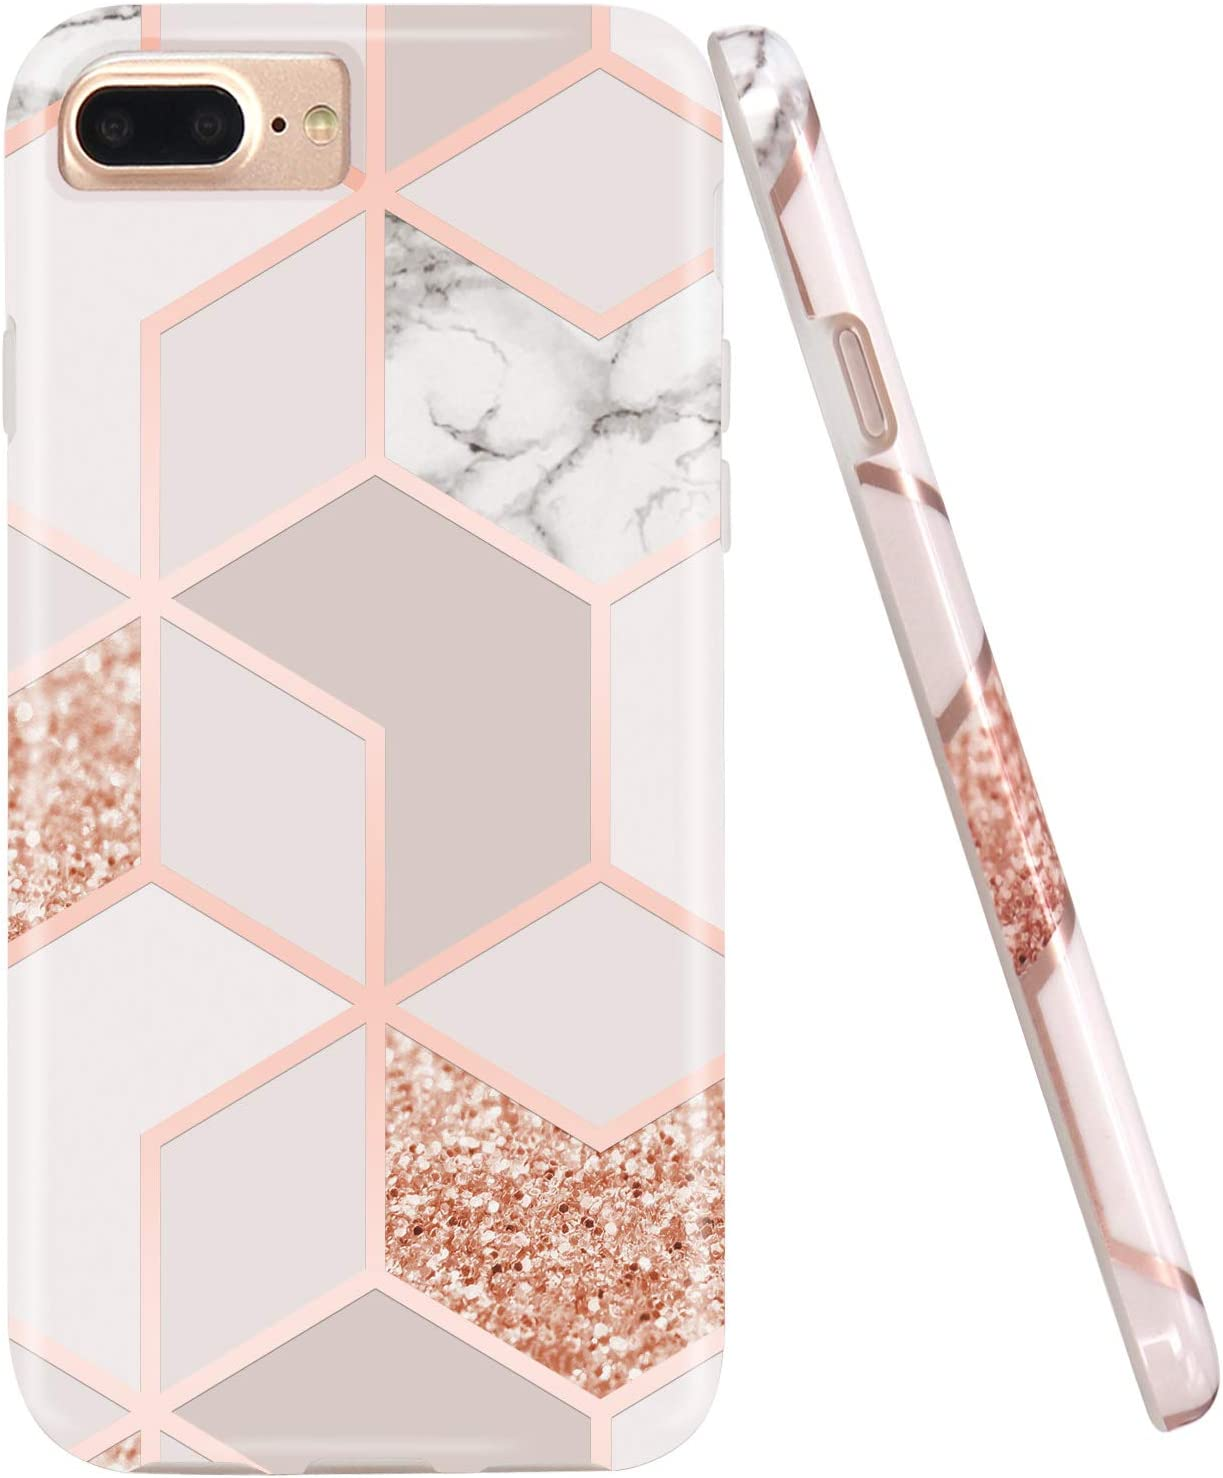 JAHOLAN Stylish Shiny Rose Gold Marble Design Clear Bumper TPU Soft Rubber Silicone Phone Case Compatible with iPhone 7 Plus/8 Plus/6 Plus/6S Plus